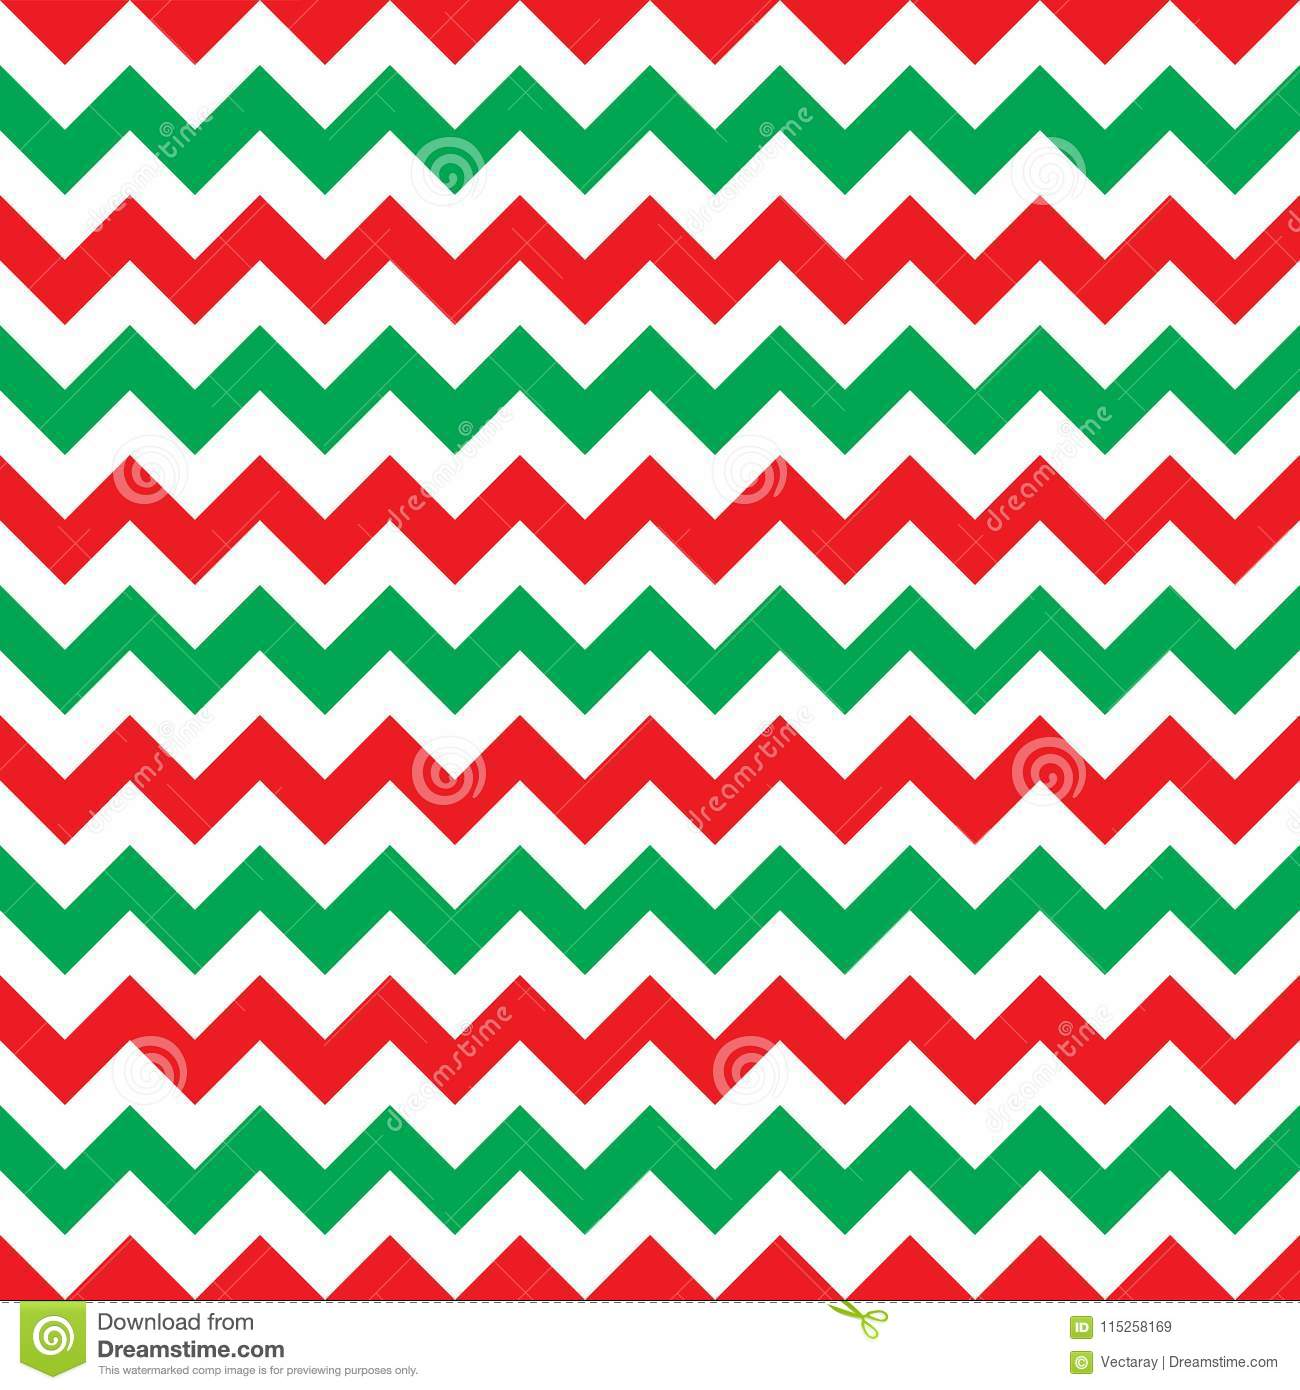 Seamless Christmas Wrapping Paper Chevron Pattern Background Texture